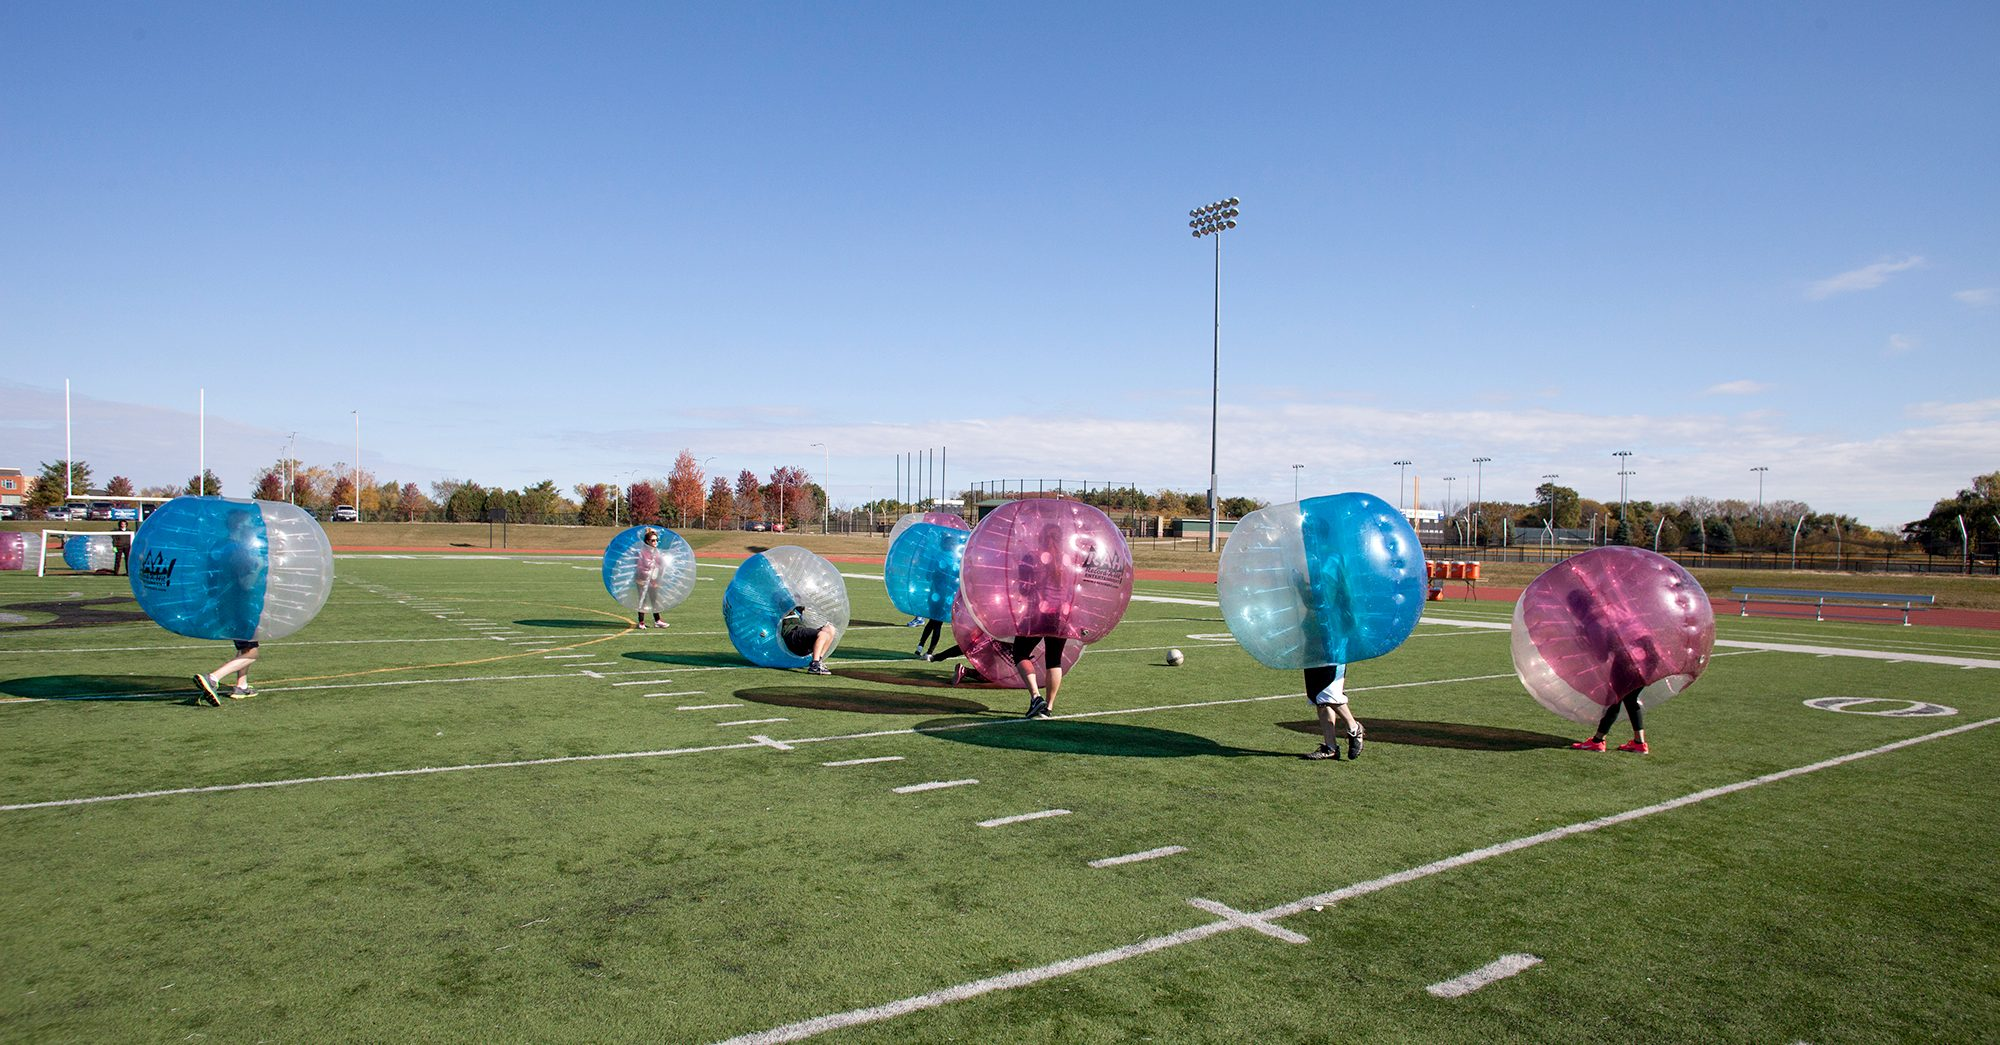 Kidulting 2017 trends bubble soccer